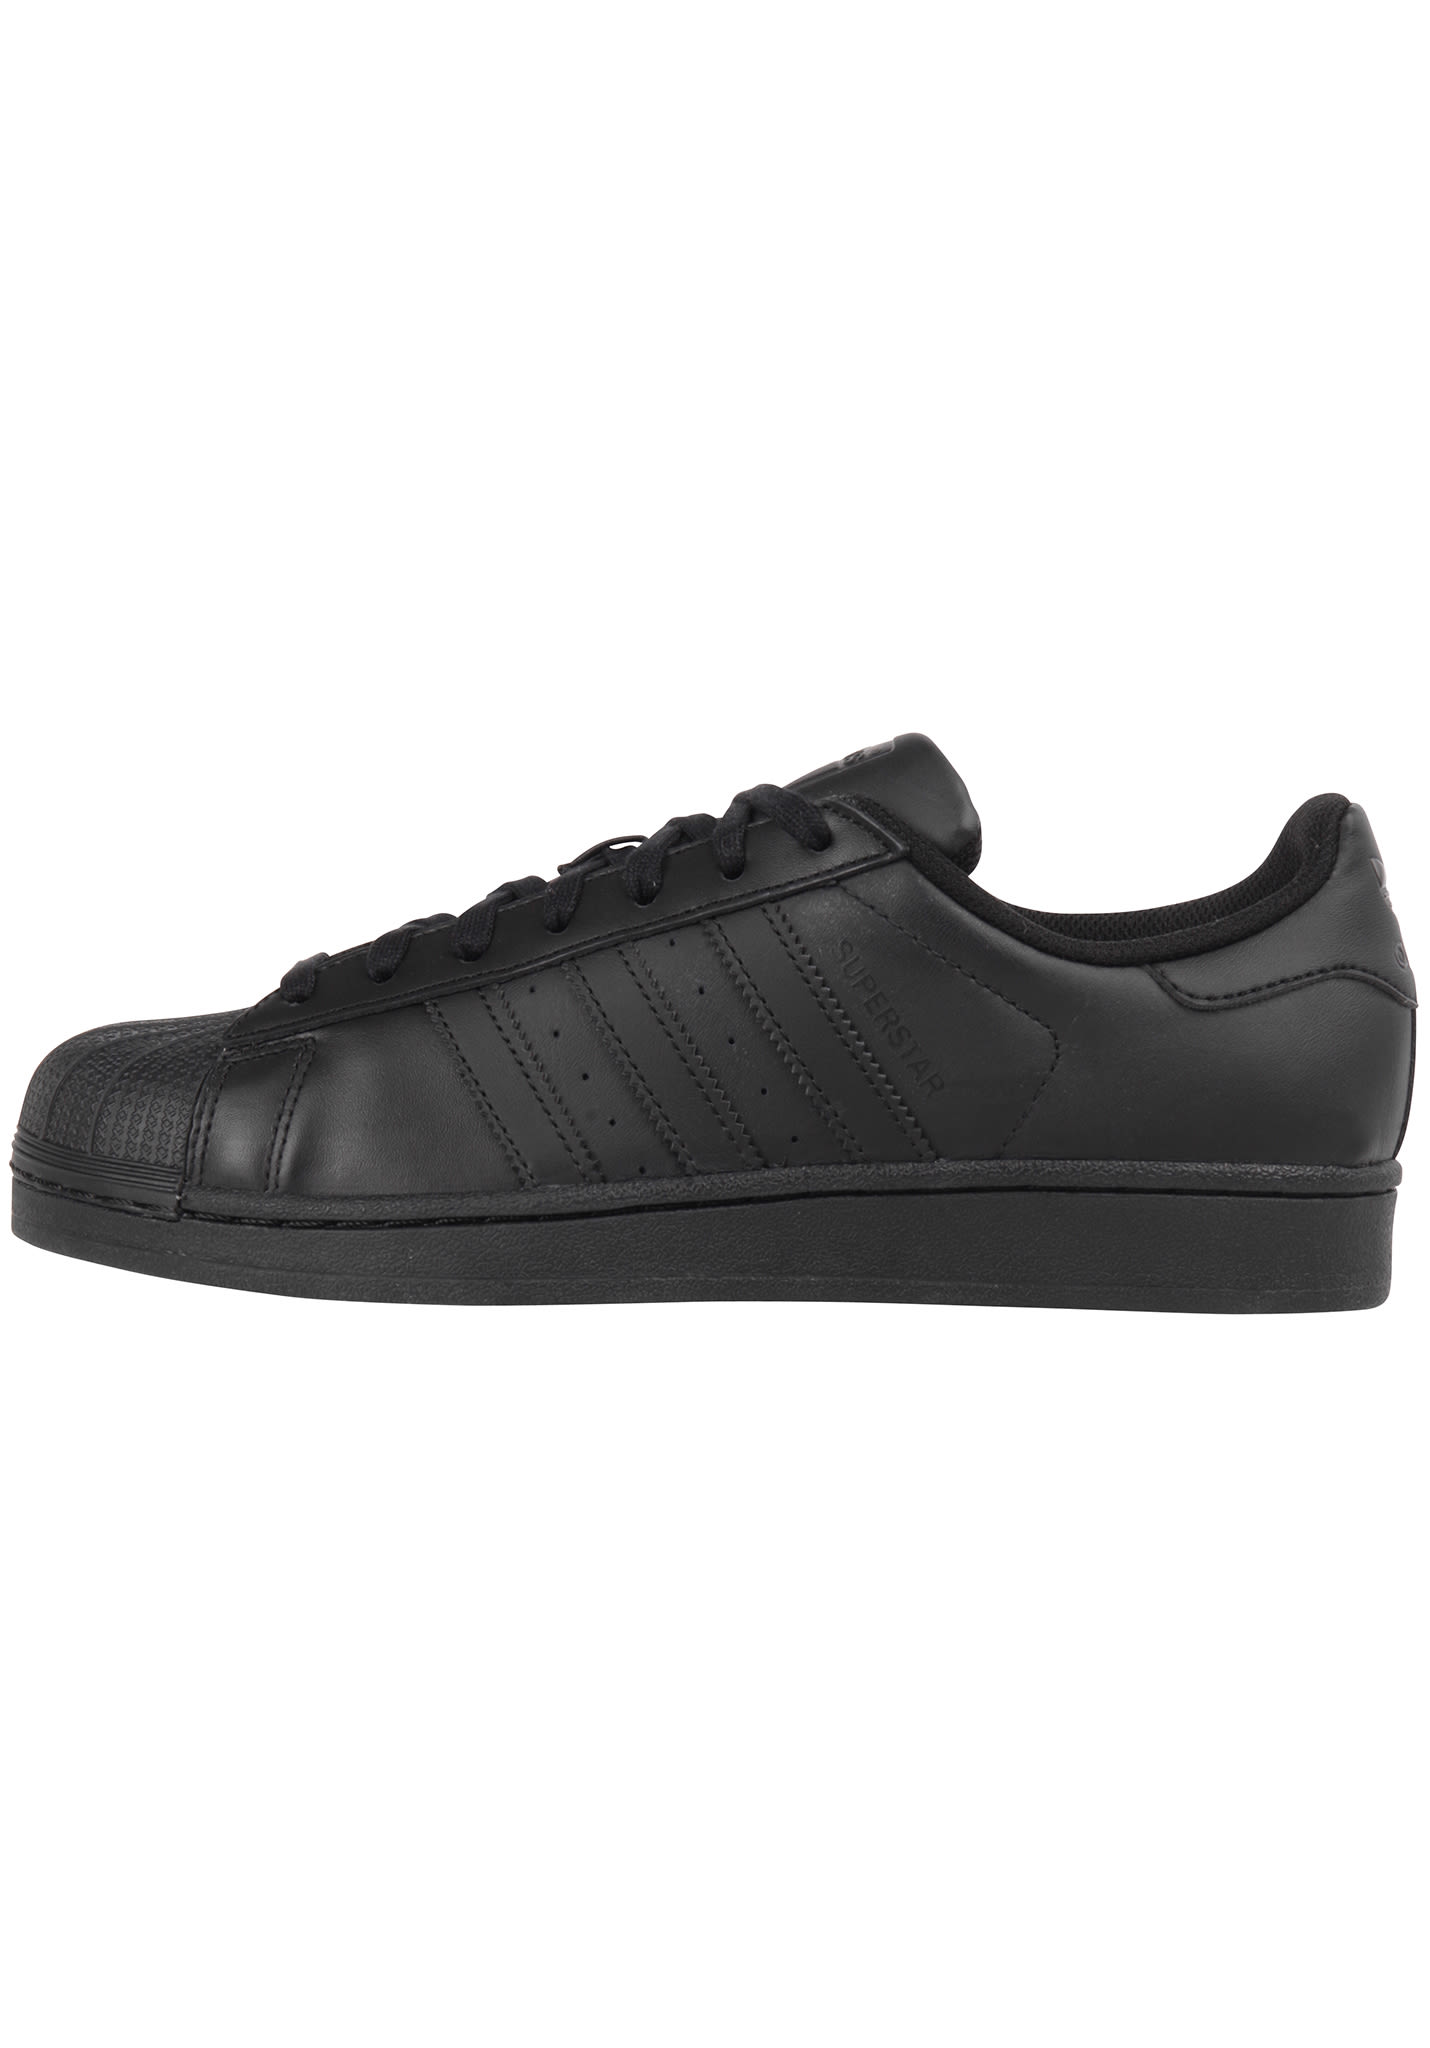 Cheap Adidas Original C77124 Superstar White Black Gold Label Foundation